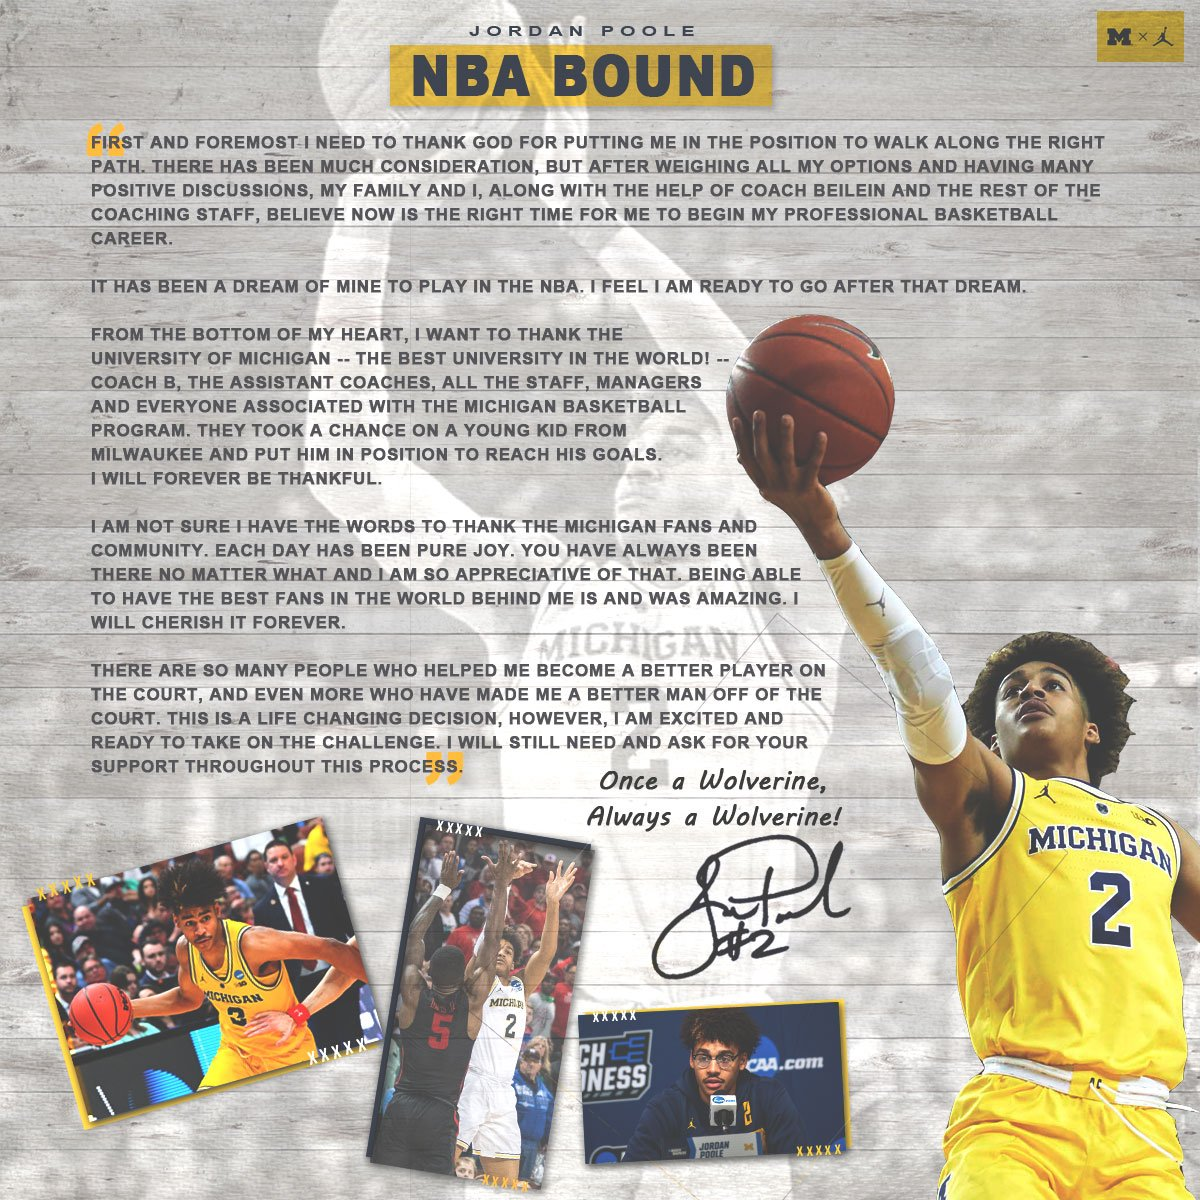 IT'S OFFICIAL! Jordan Poole will be staying in @NBADraft   In two 〽️🏀 seasons ⤵️ ✔️ 63-15 record ✔️ 13-3 postseason record ✔️✌️ B1G Tournament 🏆🏆 ✔️✌️ straight Sweet 16s ✔️A Final Four & National Title Game  THANK YOU Jordan WISHING you nothing but success  #GoBlue